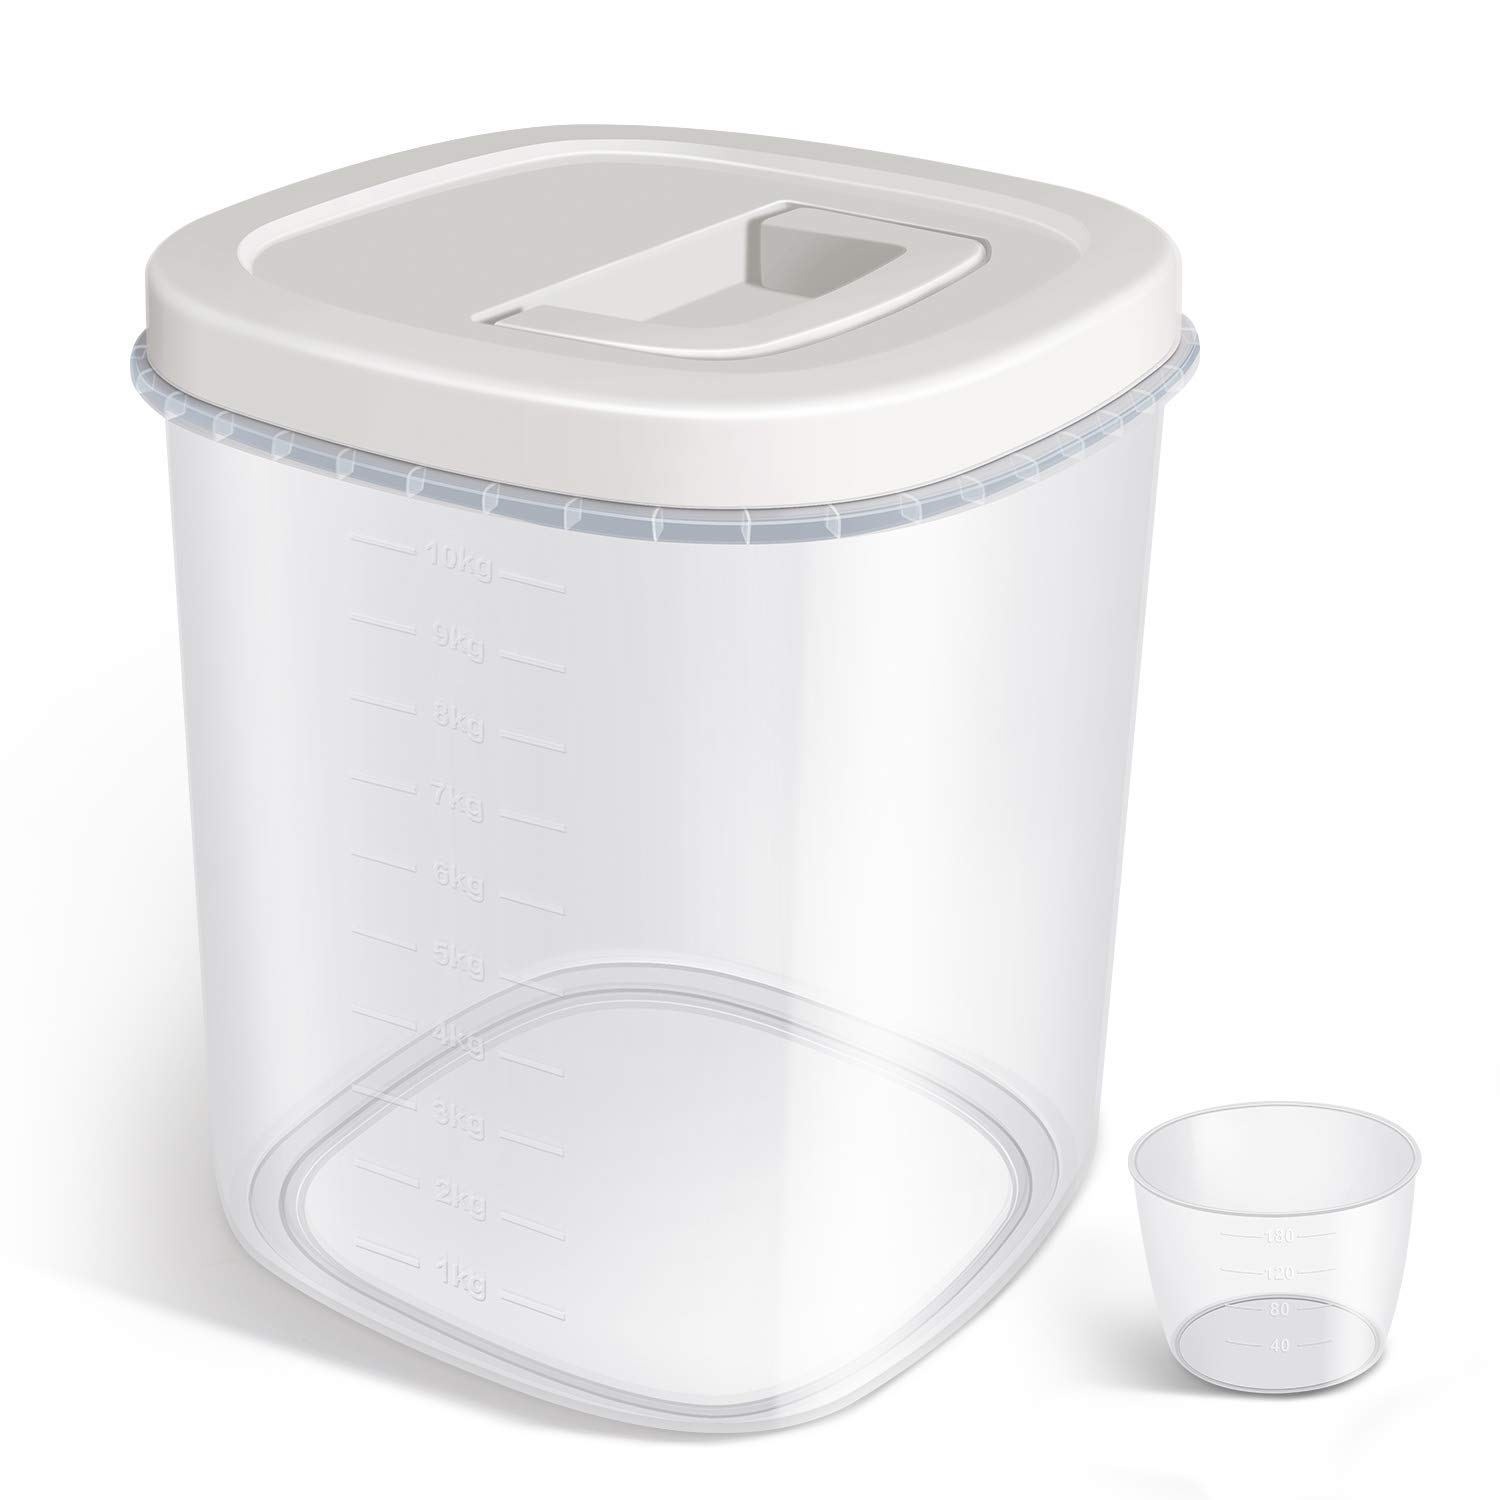 Airtight Food Storage Container - 20 Lbs Rice Container Bin with Measuring Cup - Cereal Container Dispenser for Rice Flour Storage, Kitchen Pantry Organization